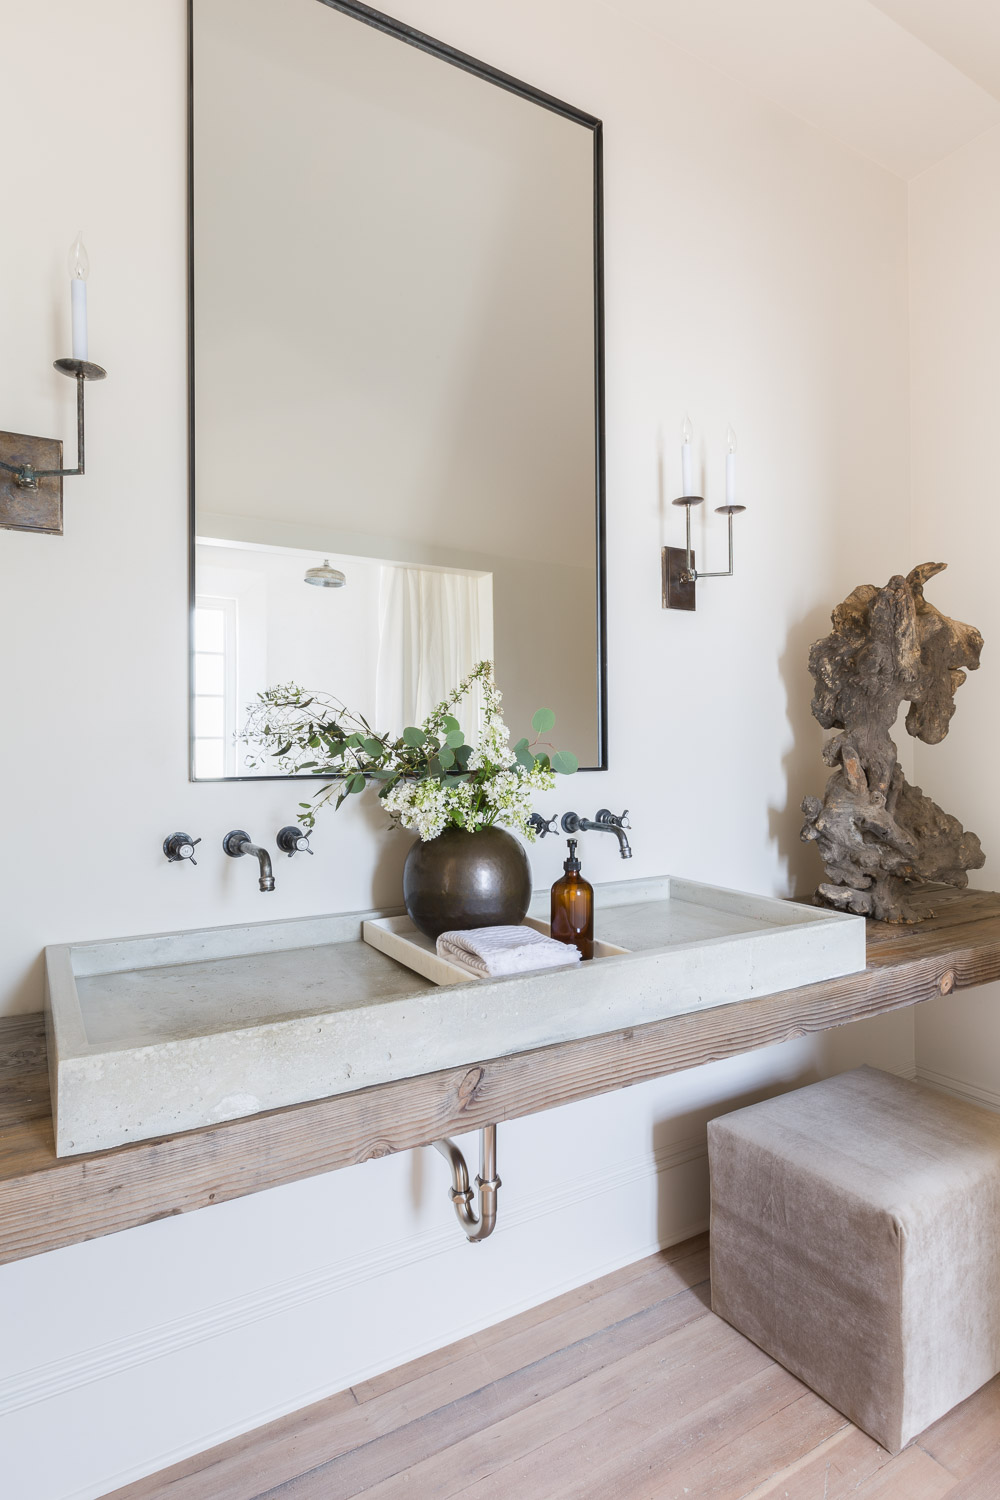 Rustic Modern Bathroom by Kaemingk Design.  Photo: Alyssa Rosenheck